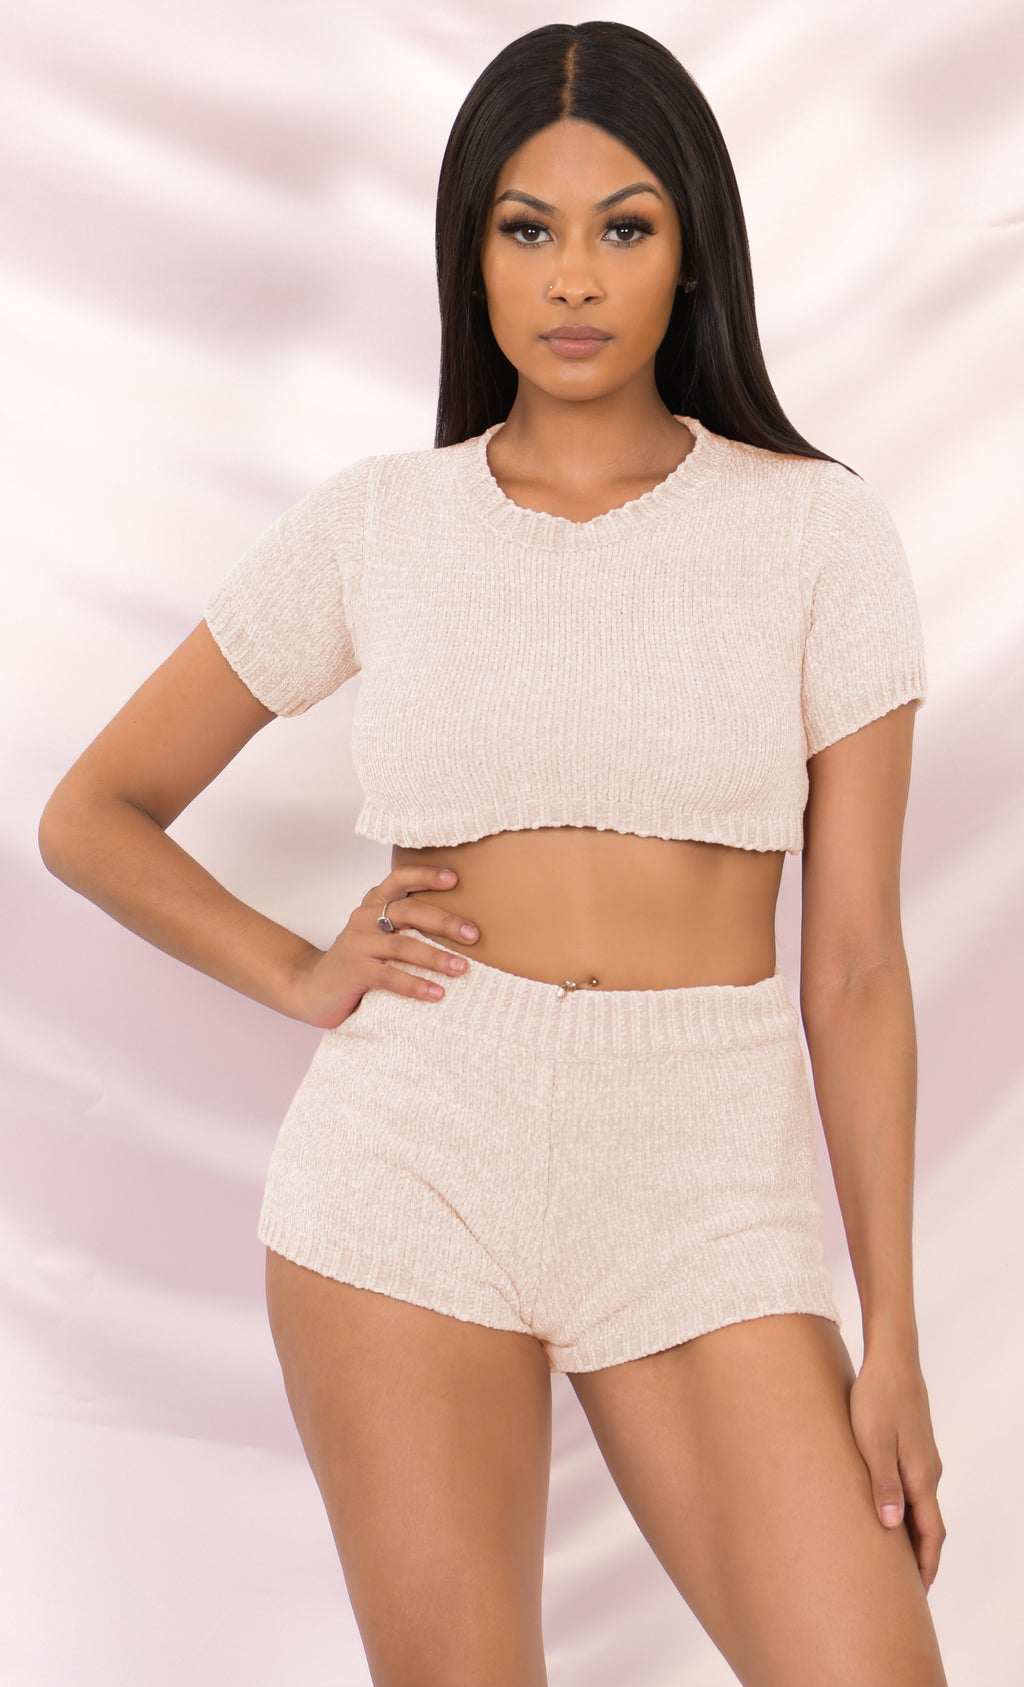 Always Chill Vanilla Short Sleeve Crew Neck Crop Top Sweater Chenille Elastic Shorts Two Piece Lounge Romper Set